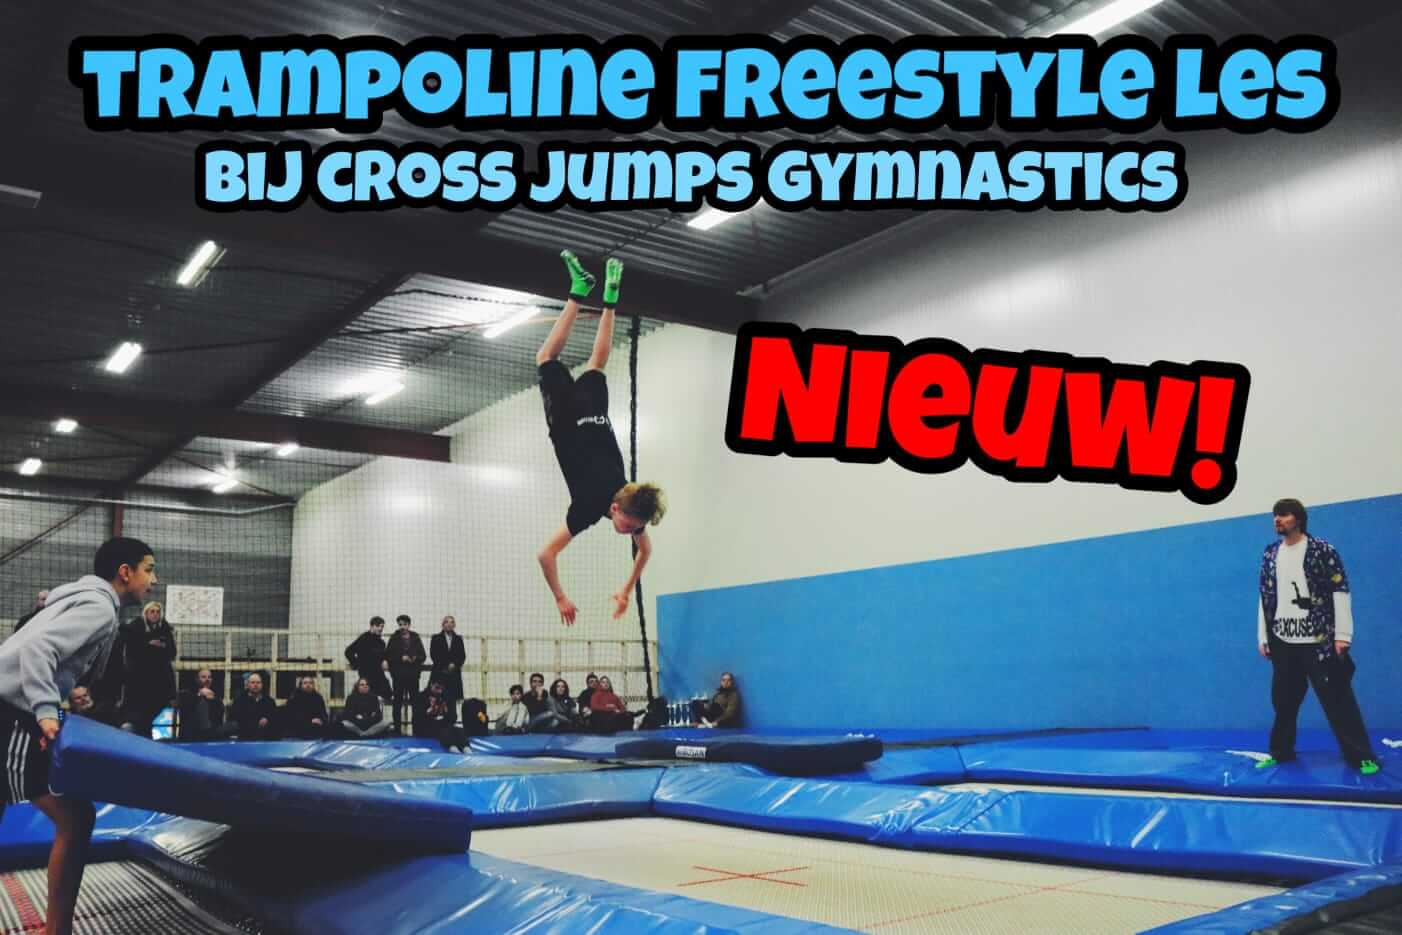 Freestyle trampolines Coss Jumps Gymnastics